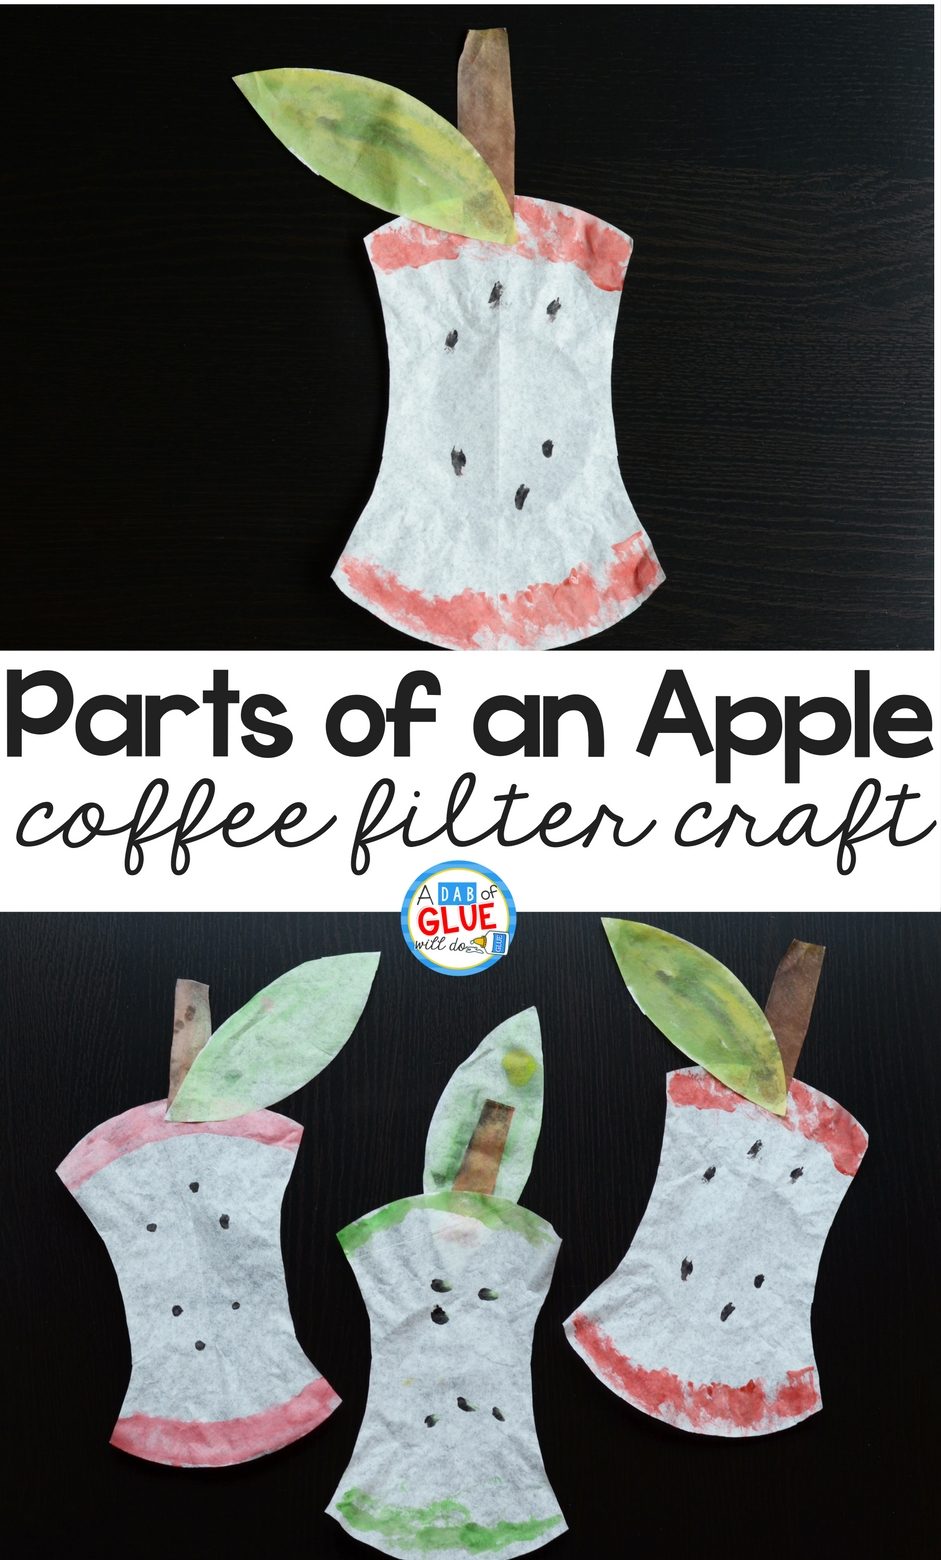 Today we are sharing a fun craft to help learn the parts of an apple! This is a simple coffee filter craft that uses watercolor paints to create an apple core, skin, leaf, stem, and seeds. This craft is a great one to do in the beginning of the year for preschool, kindergarten, or elementary students, or as a craft to do with apple themed units.